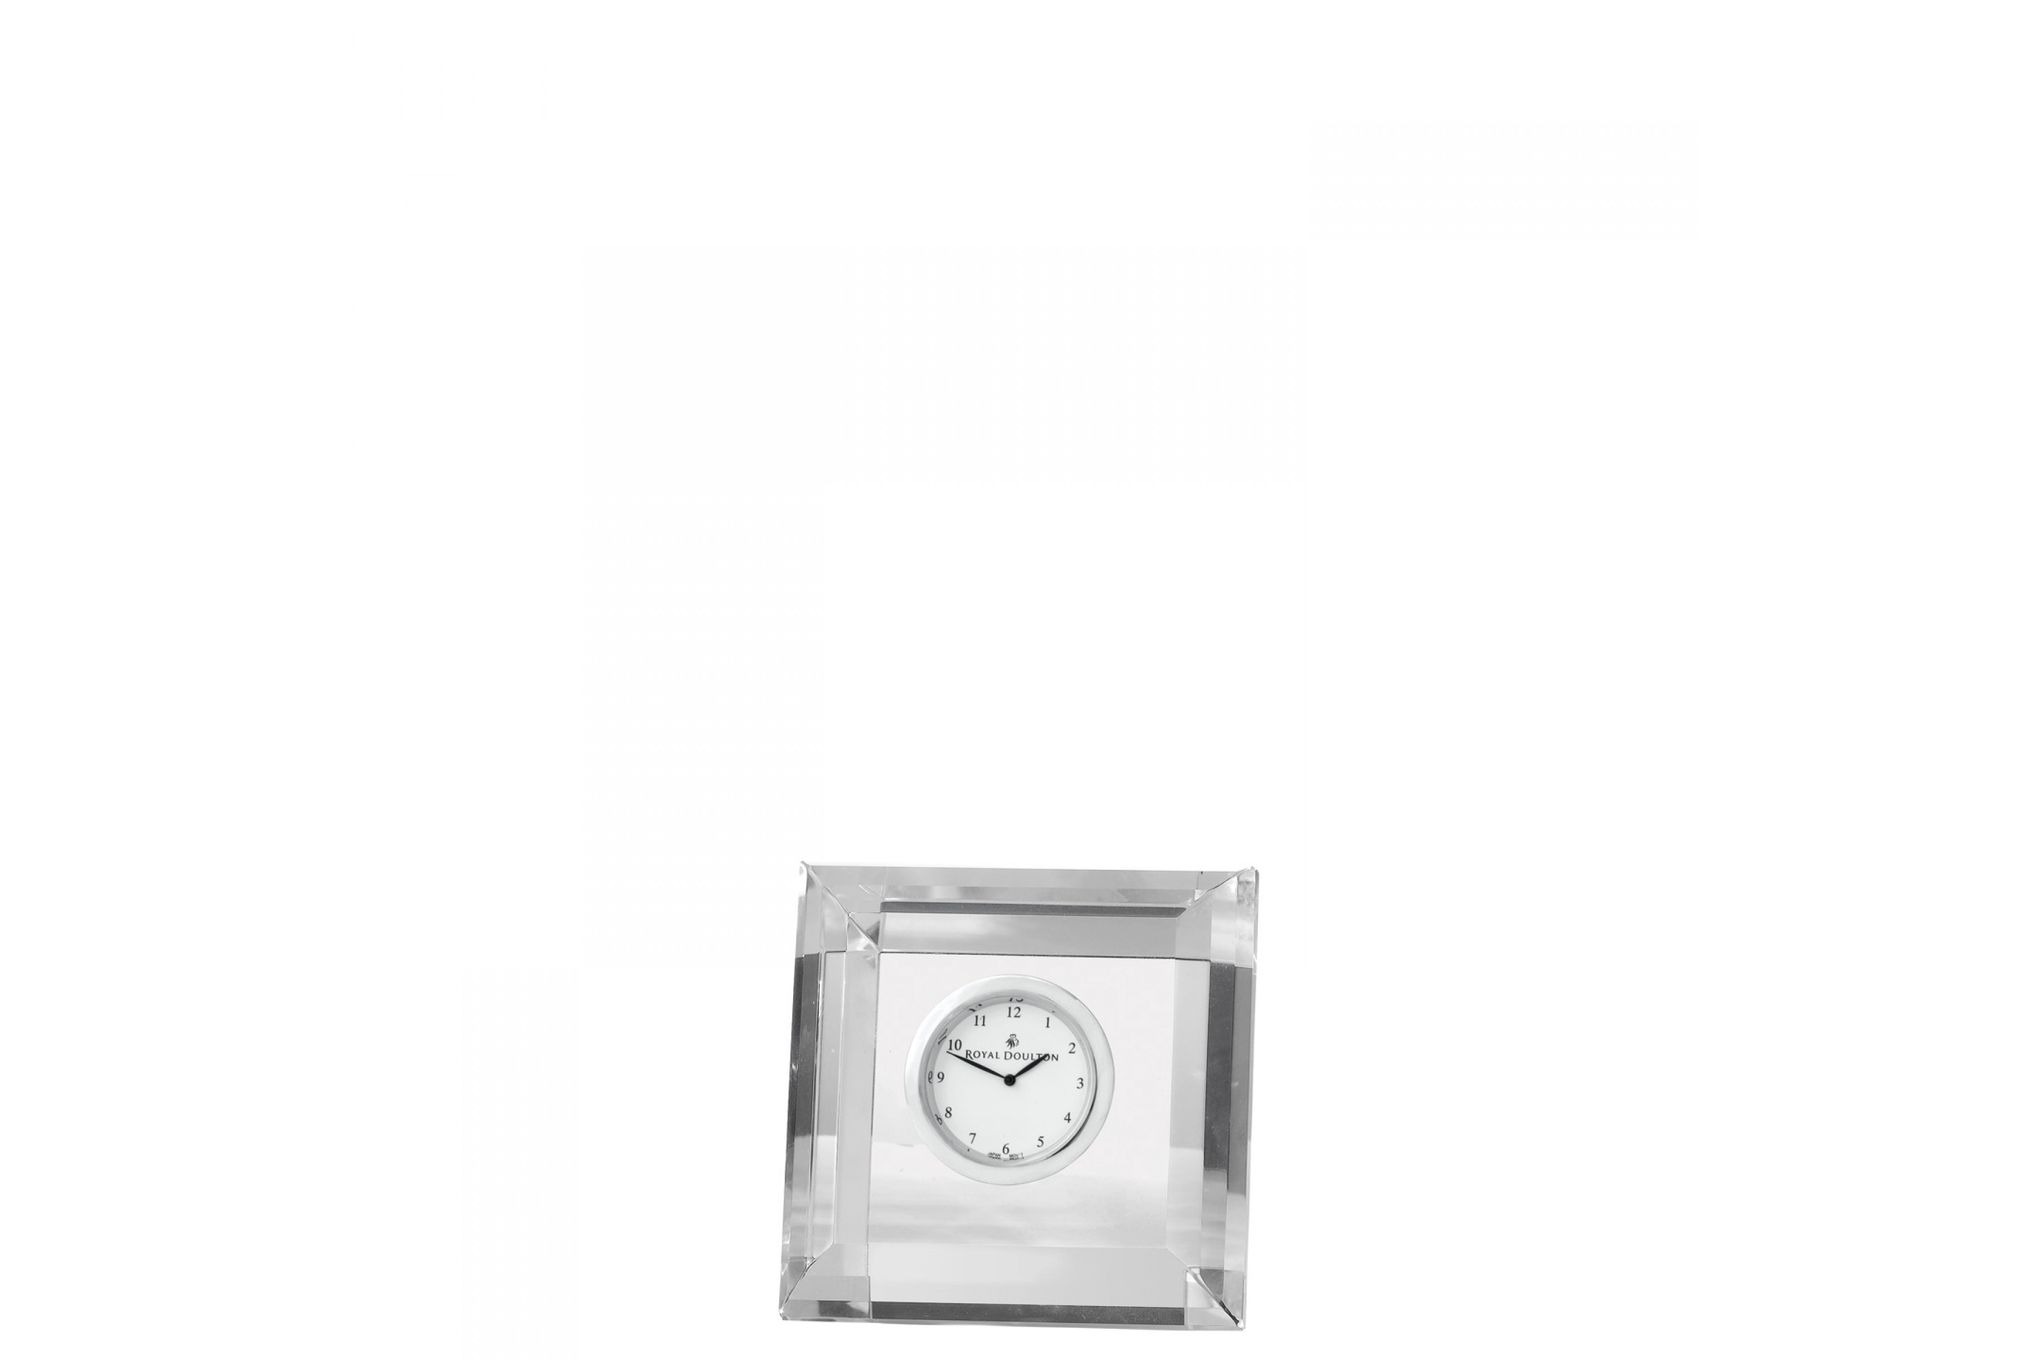 Royal Doulton Radiance Clock Square Faceted Boxed thumb 1